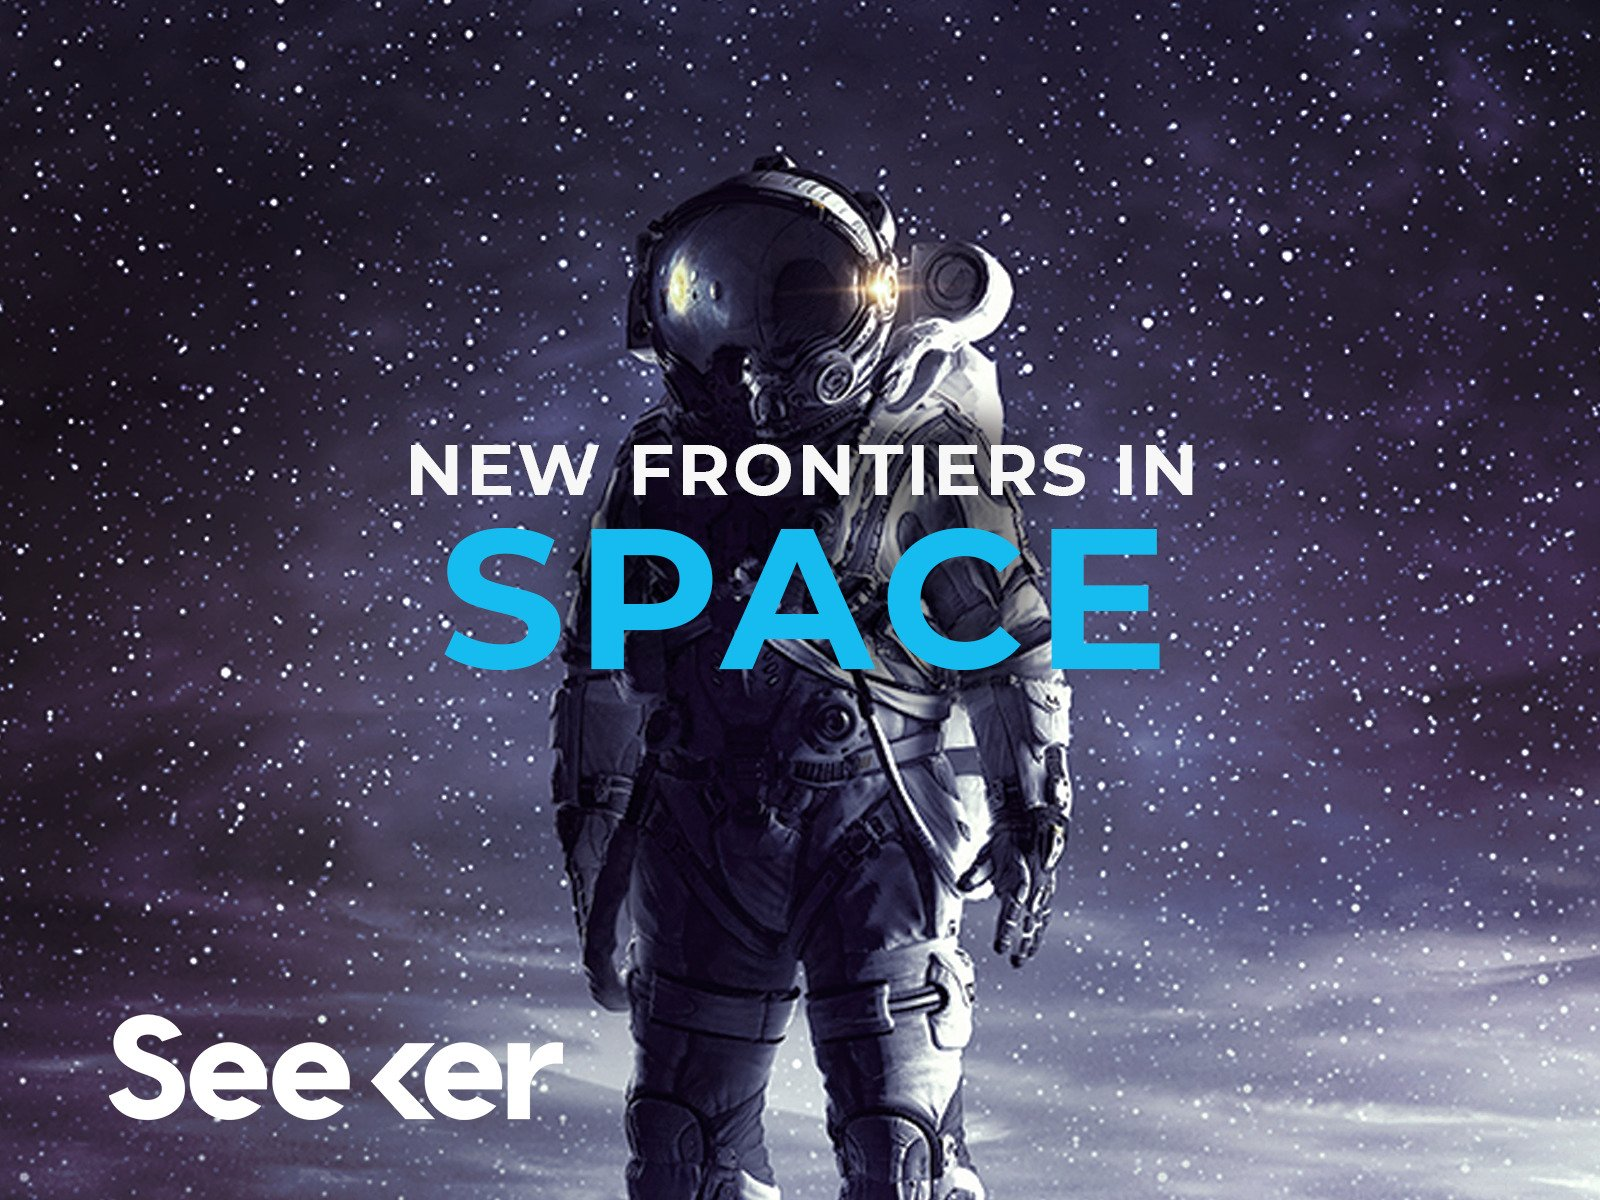 New Frontiers In Space - Season 1